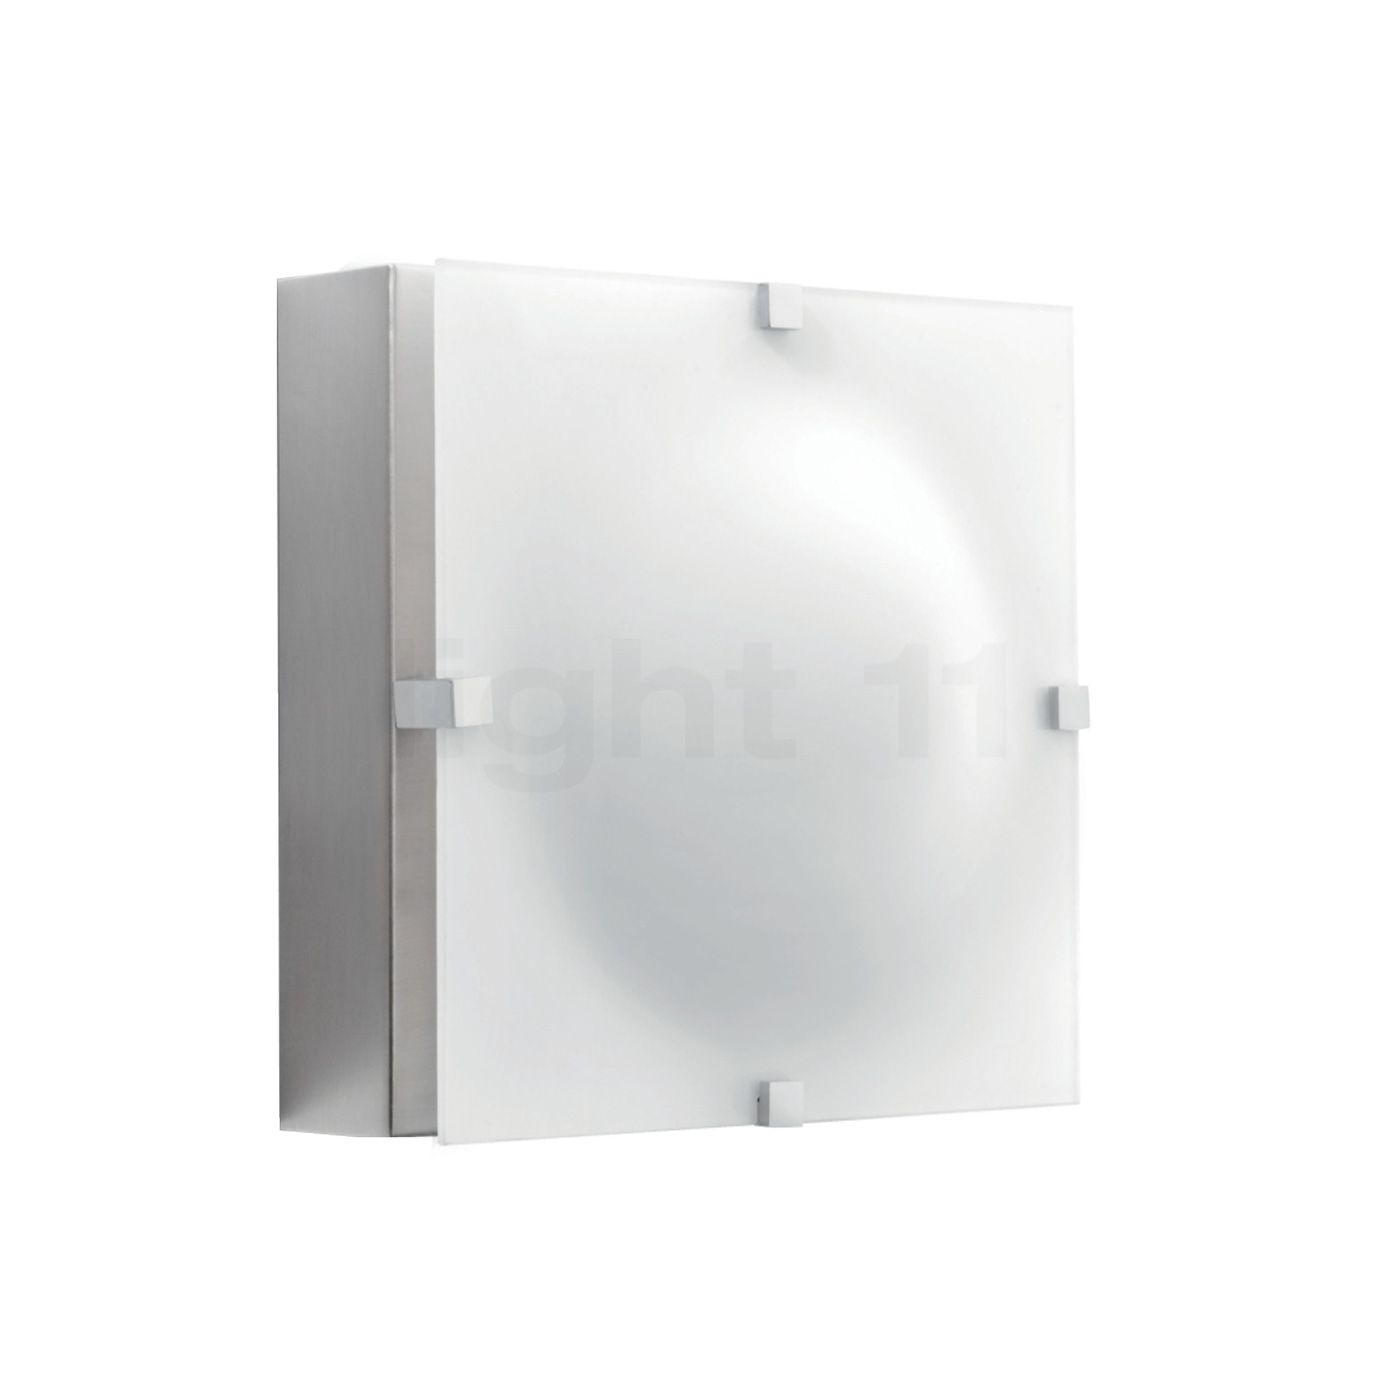 Philips ledino mygarden elysium 17219 applique murale led for Philips ledino applique murale exterieur